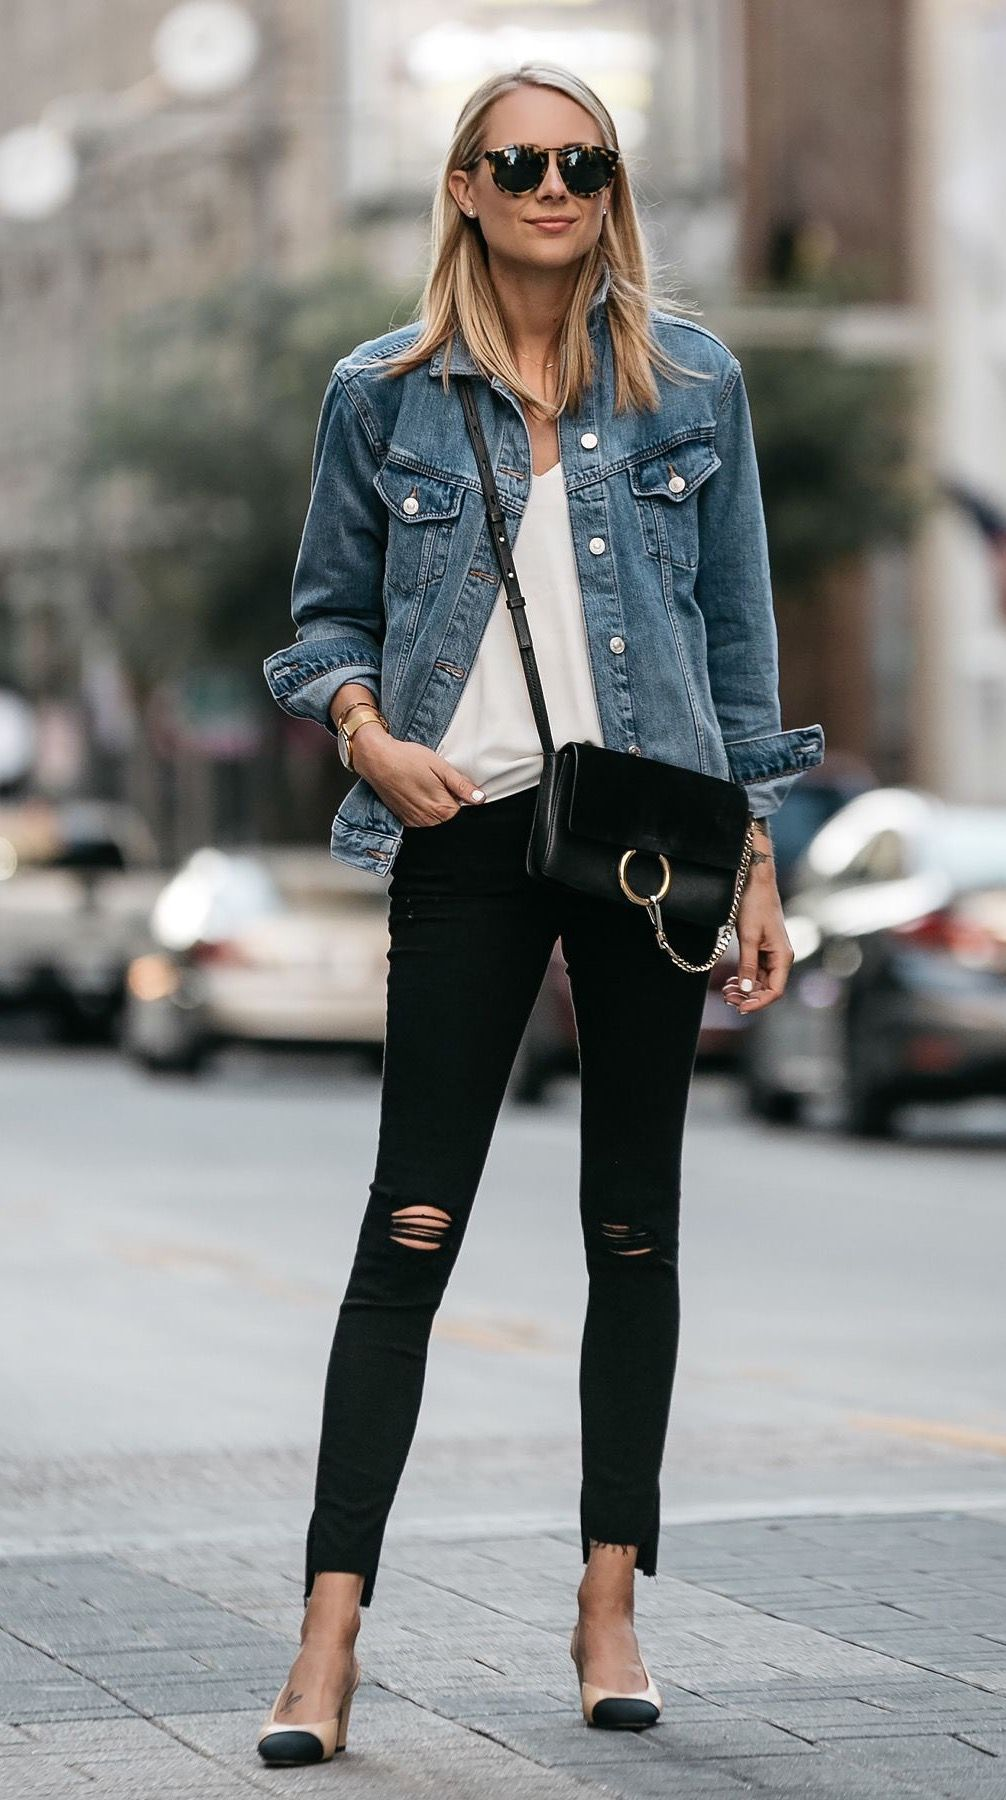 c75b2657042 Denim jacket. Black ripped jeans. Heels. Chloe small faye ...